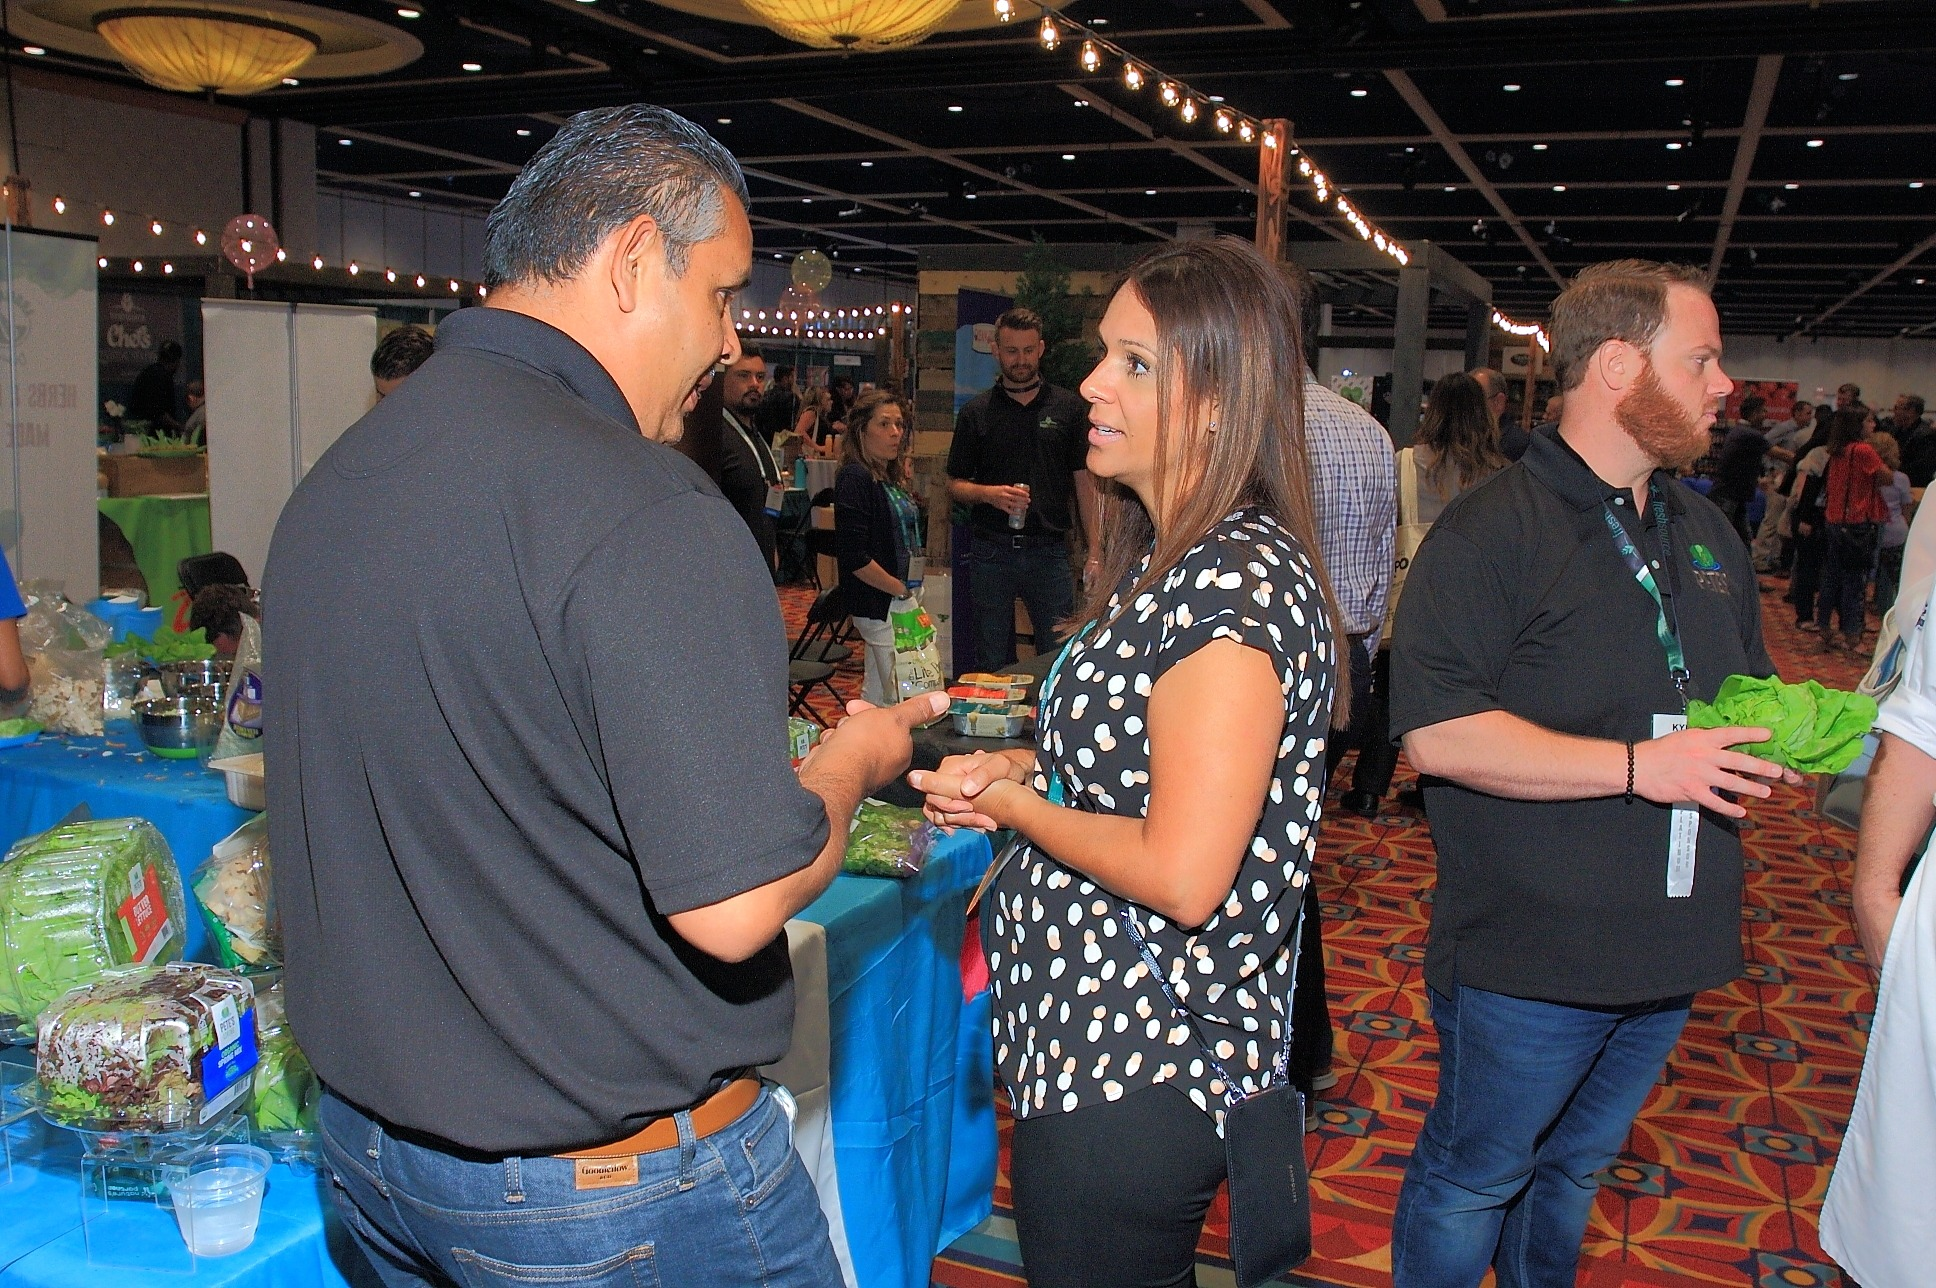 Baltazar Garcia from Pete's talks about new product with Sheryl Salazar from Albertson's